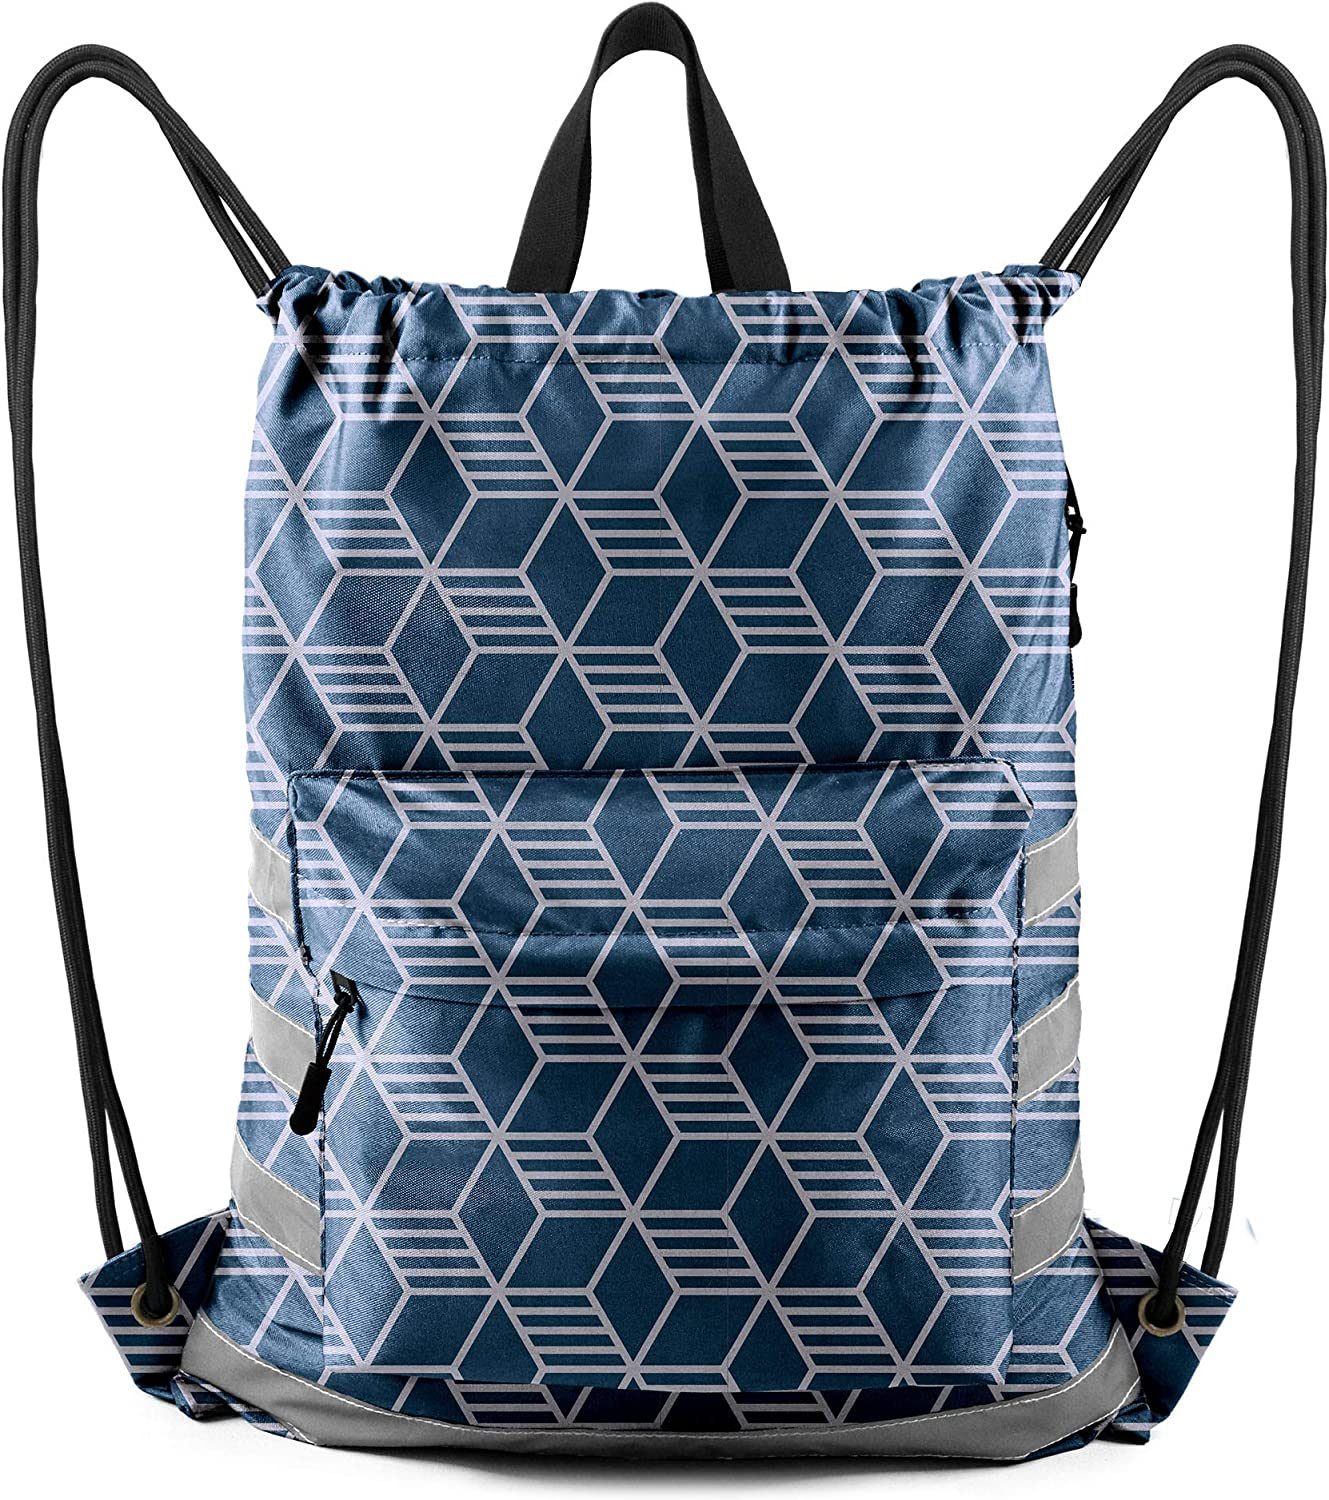 Black with White Polka Dots 1 Pack Drawstring Bag with Front Zipper Bag Inside Pouch Oxford Fabric Drawstring Reflective Backpack for Men Women Gym Shopping Sport Yoga